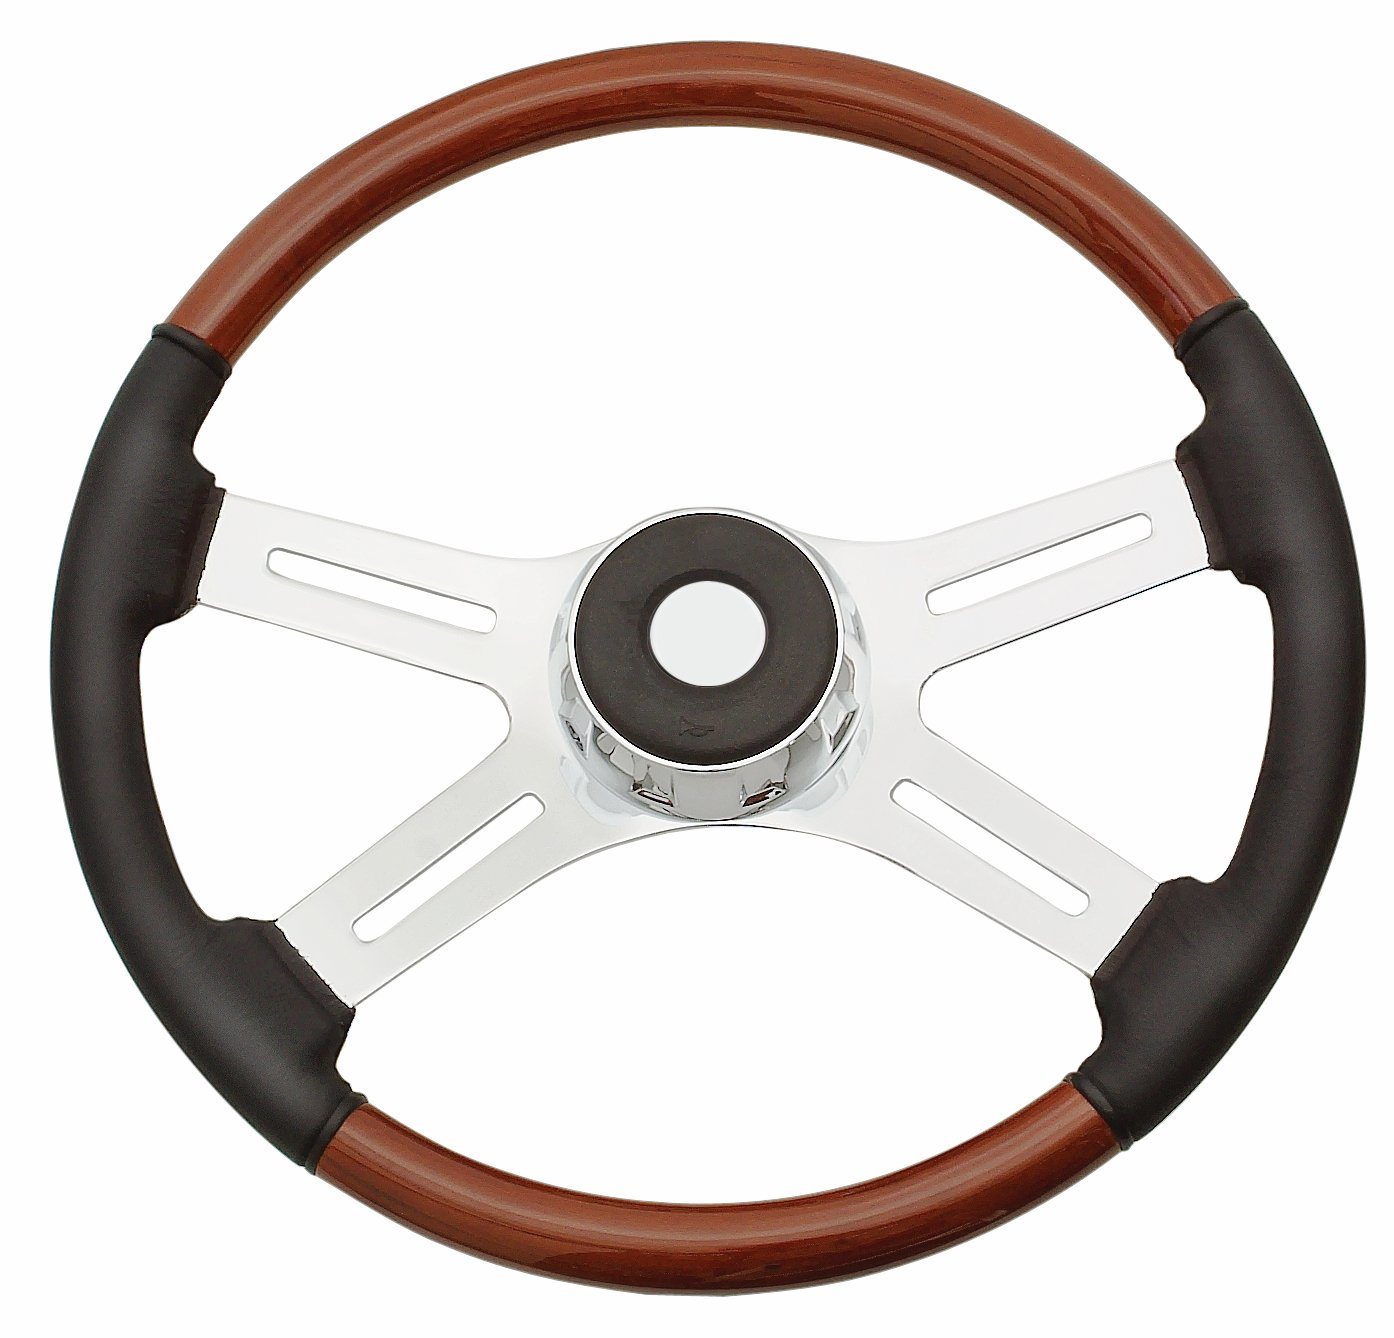 Woody's WP-SWKW9701L Rosewood Chrome Truck Steering Wheel (Beautiful African Hardwood) by Woody's